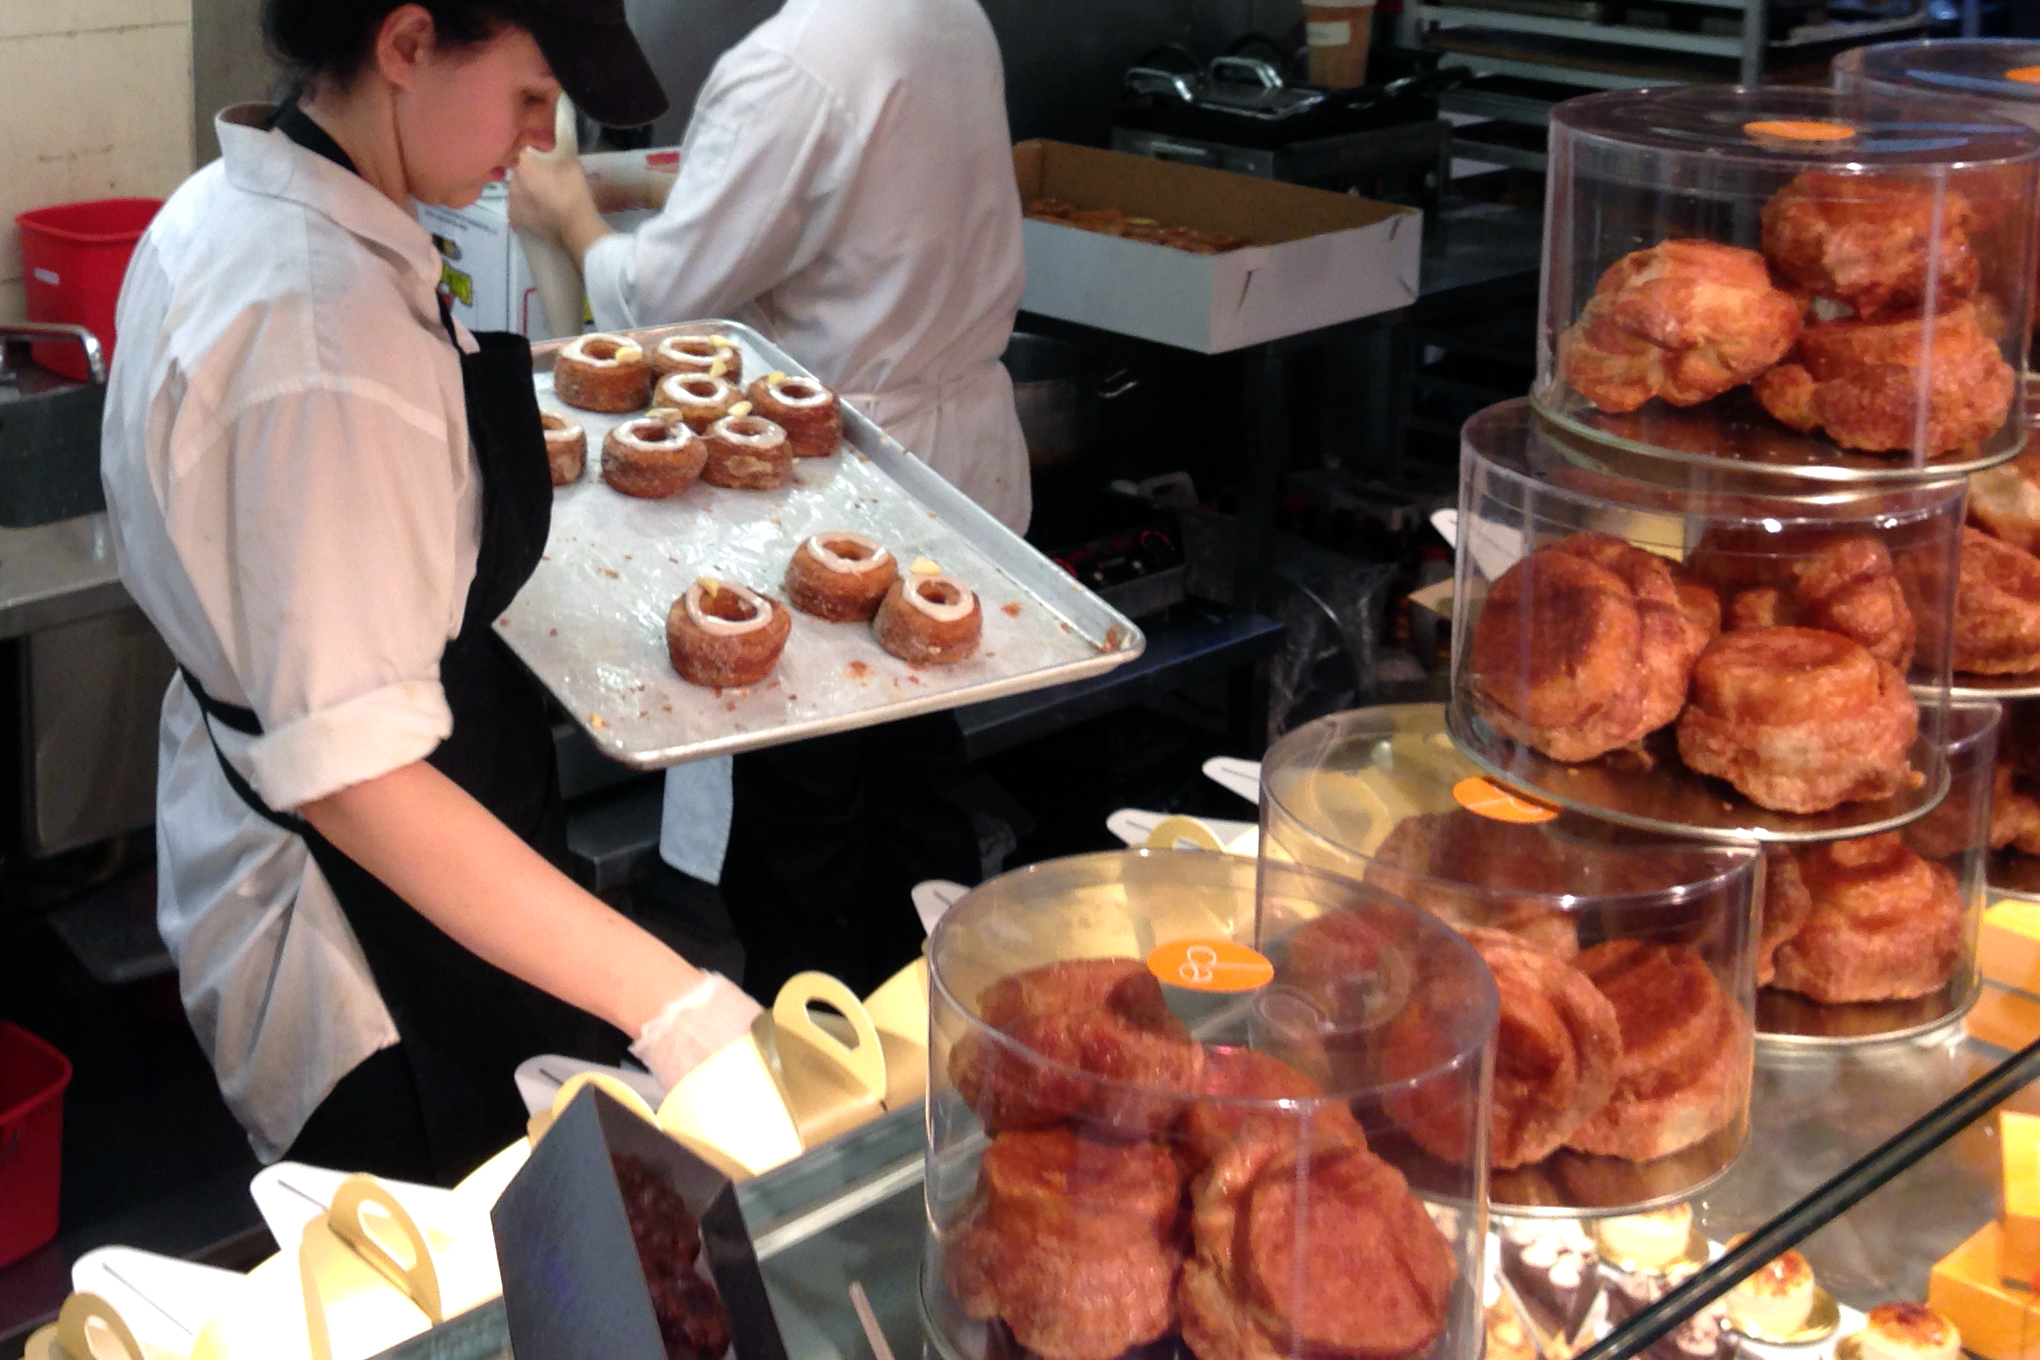 Boxing the Cronuts